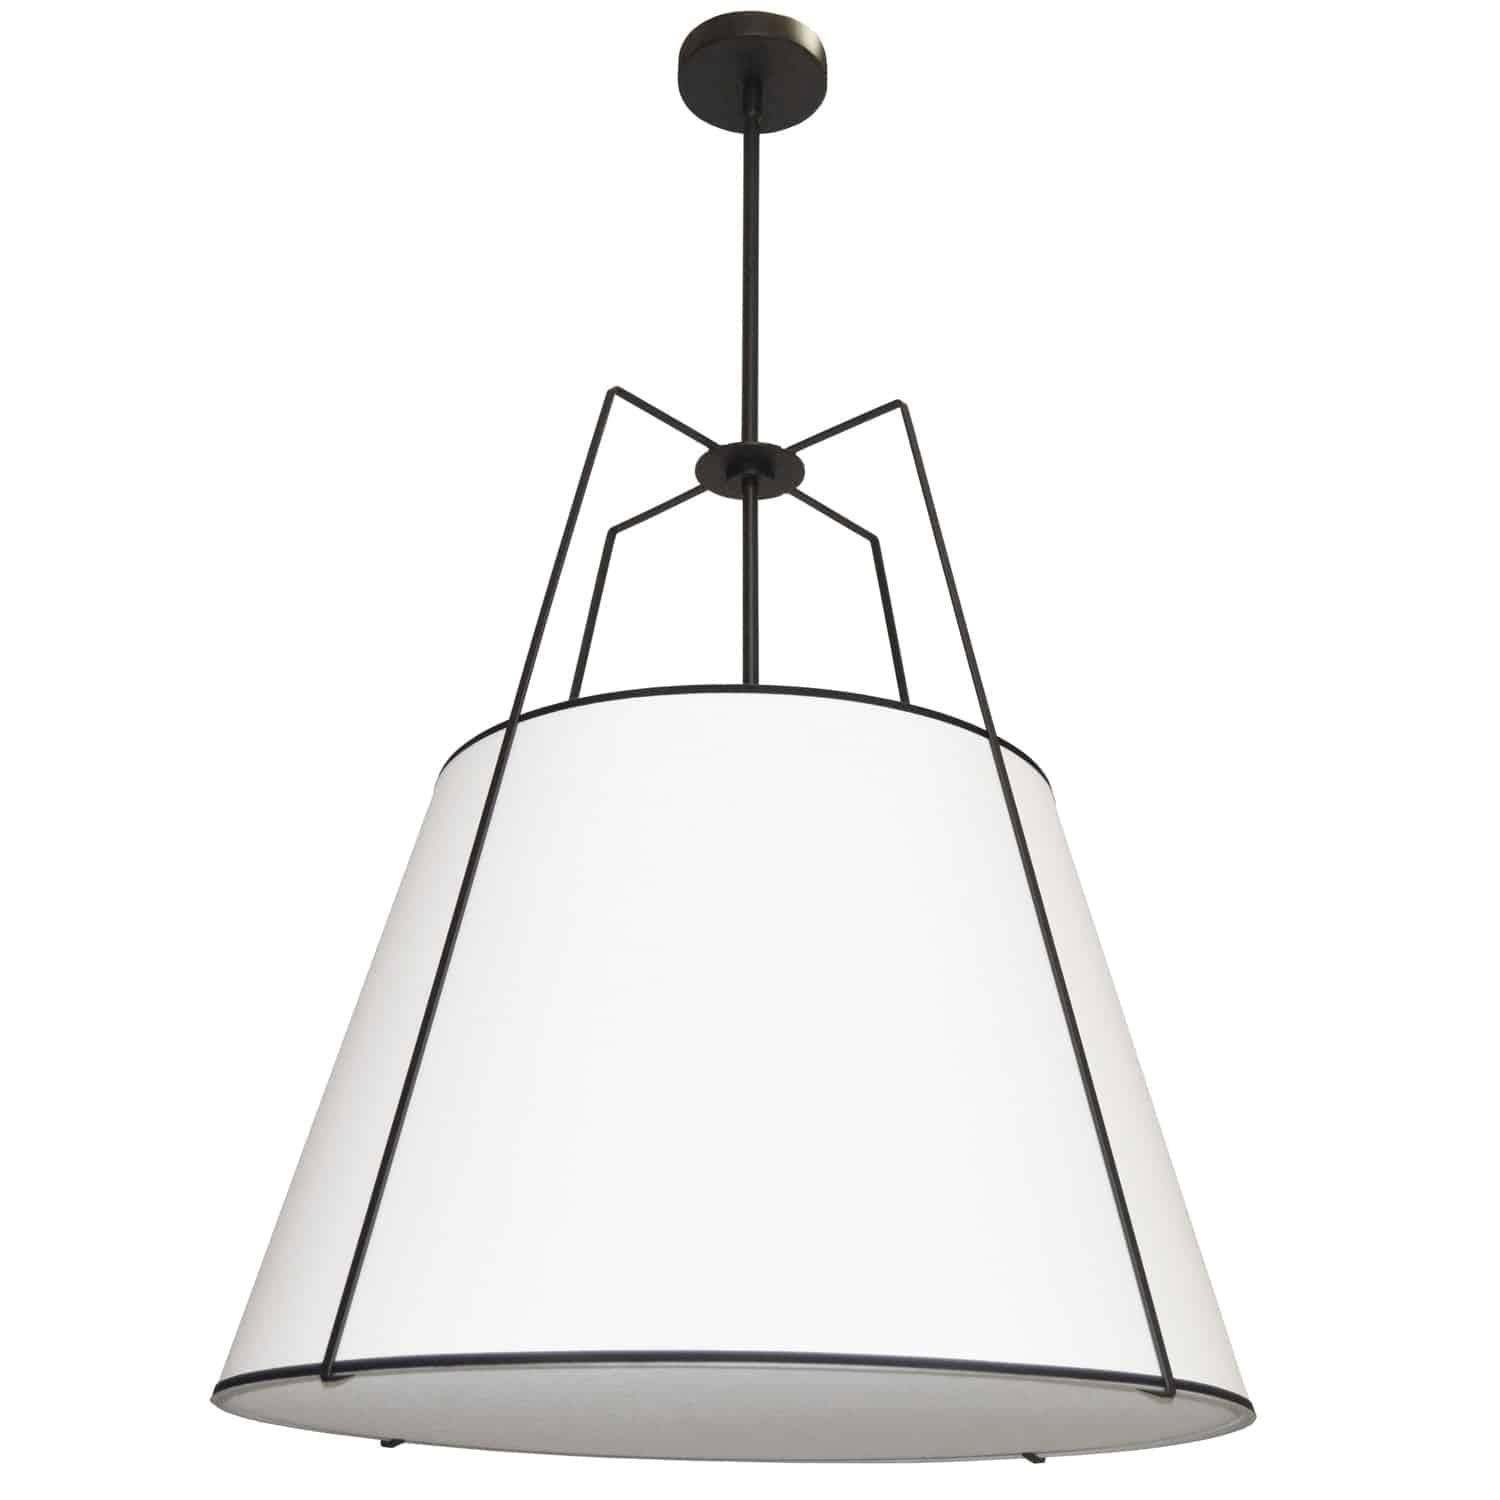 3 Light Trapezoid Pendant Black White Shade with 790 Diffuser